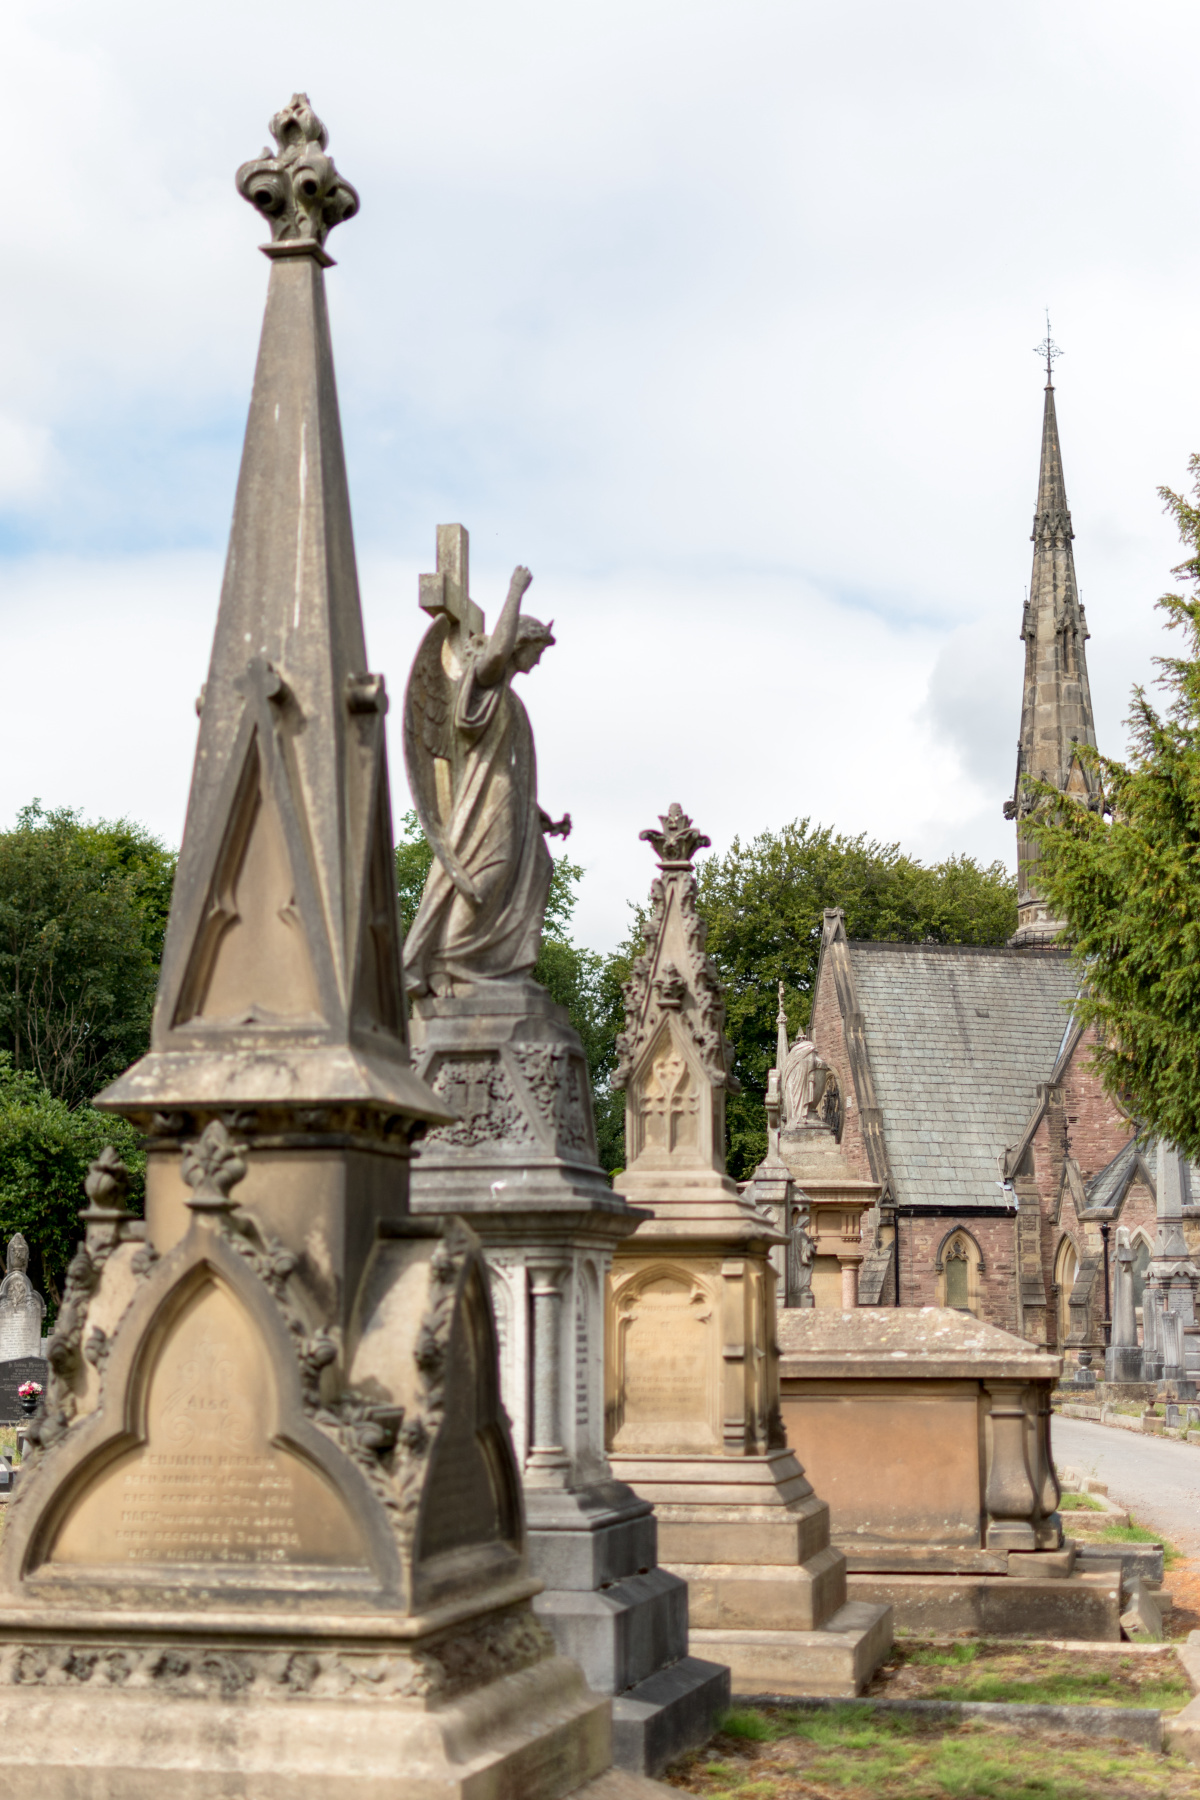 Macclesfield Cemetery in the Summer